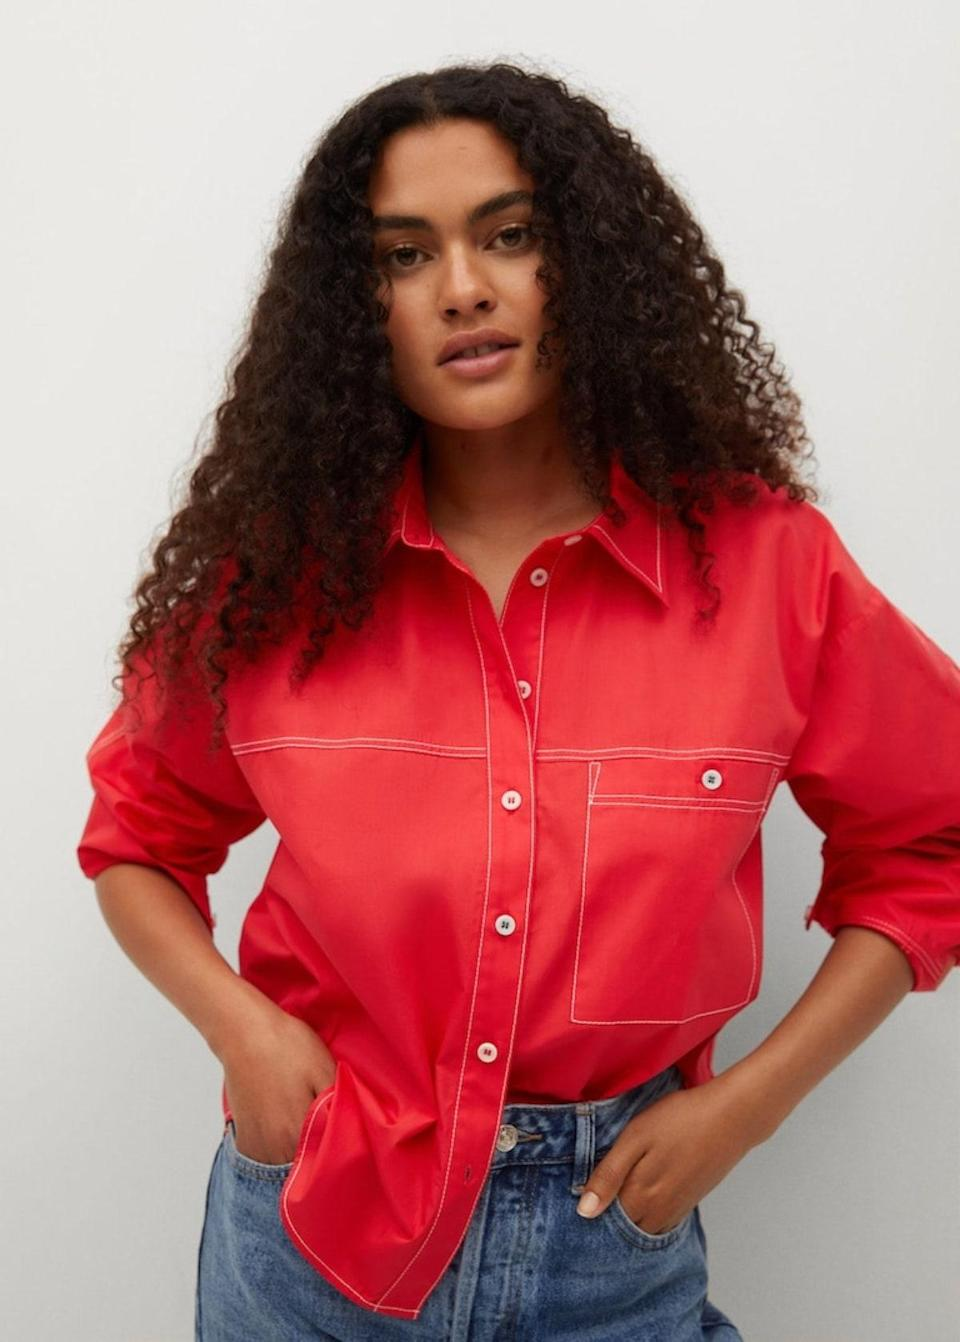 """Mango has so many great button-down shirts to choose from these days, and we're partial to this fiery-red number for a pop of color. The contrasting white stitching takes it to the next level. $50, Mango. <a href=""""https://shop.mango.com/us/women/shirts-shirts/100-cotton-shirt_17042025.html?c=70"""" rel=""""nofollow noopener"""" target=""""_blank"""" data-ylk=""""slk:Get it now!"""" class=""""link rapid-noclick-resp"""">Get it now!</a>"""